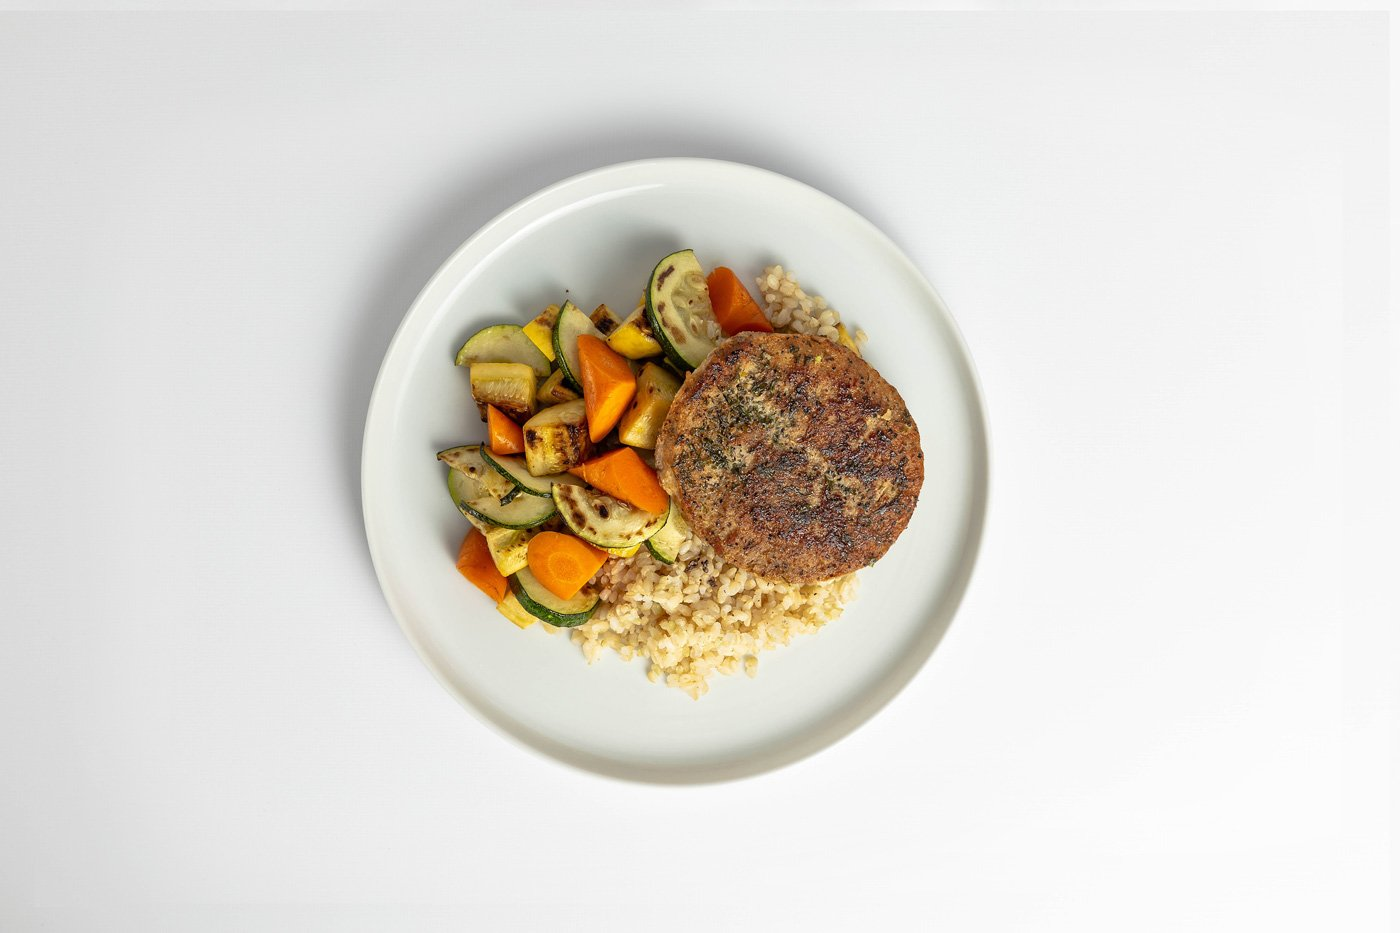 Turkey Patty, Brown Rice, Mixed Vegetables Meal Product Image